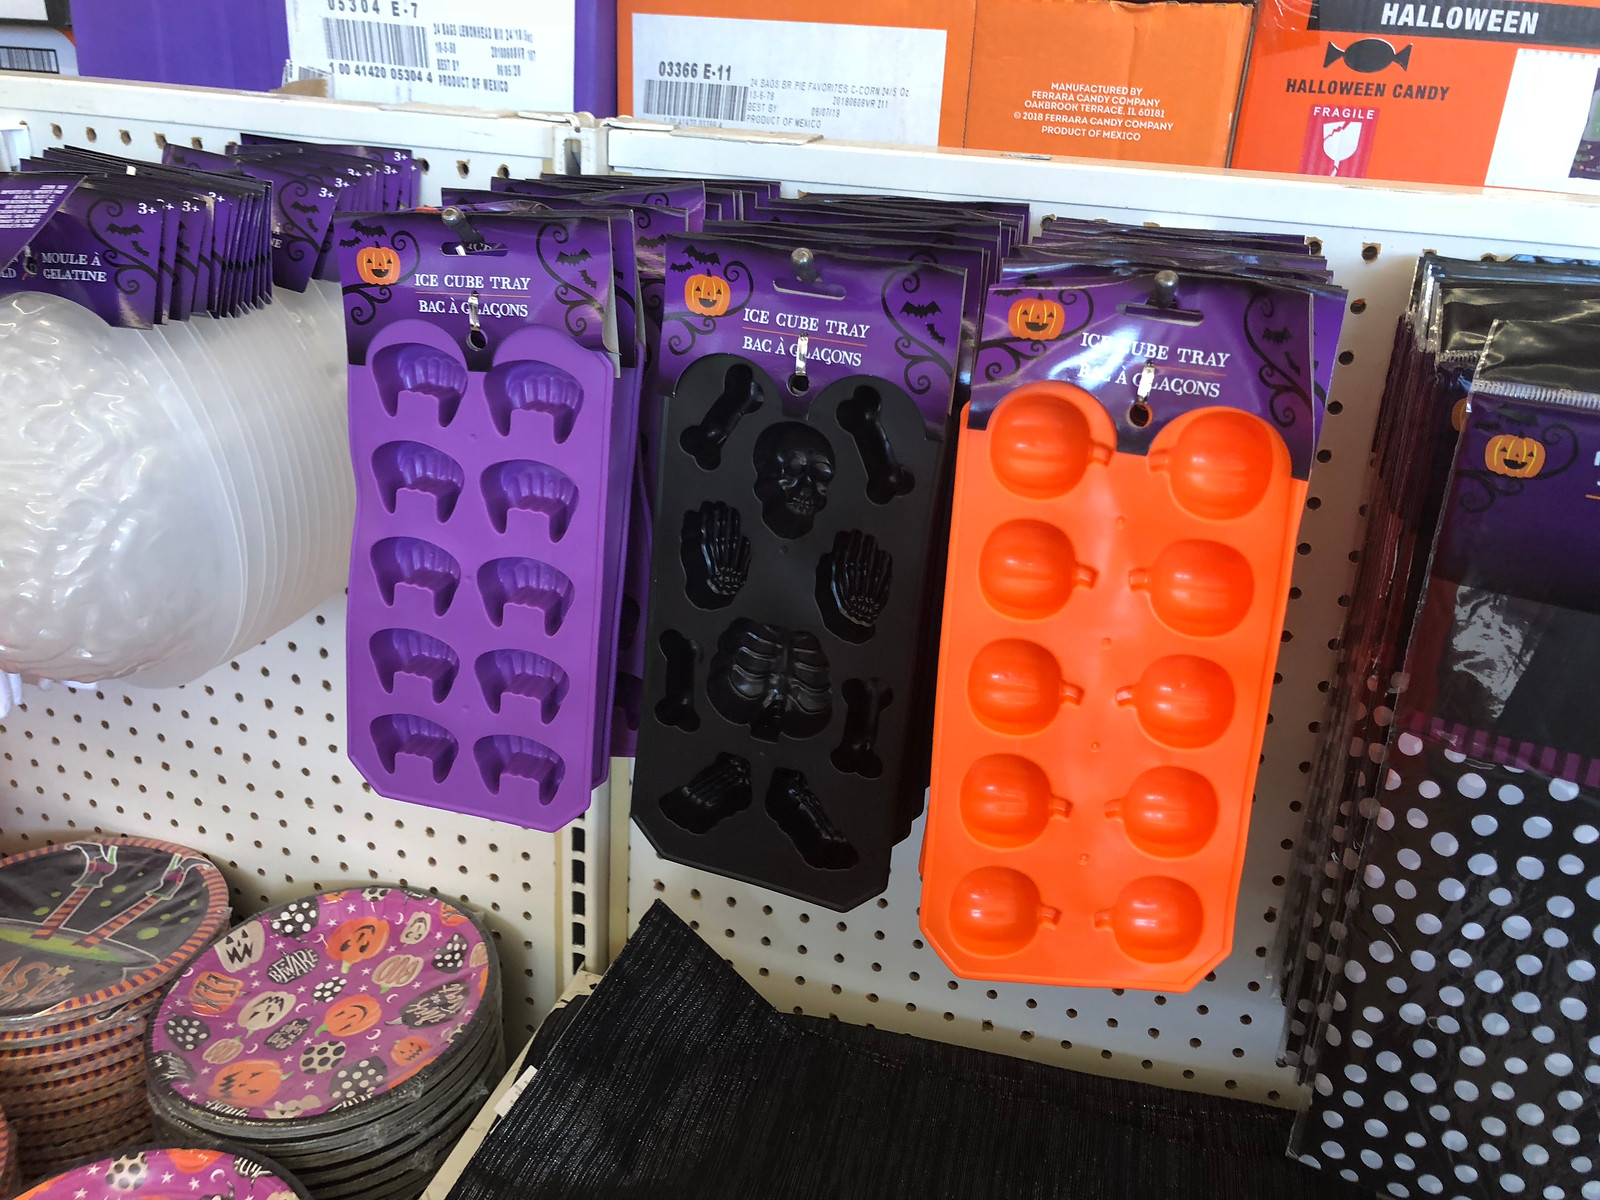 halloween decorations, party supplies & more only $1 each at dollar